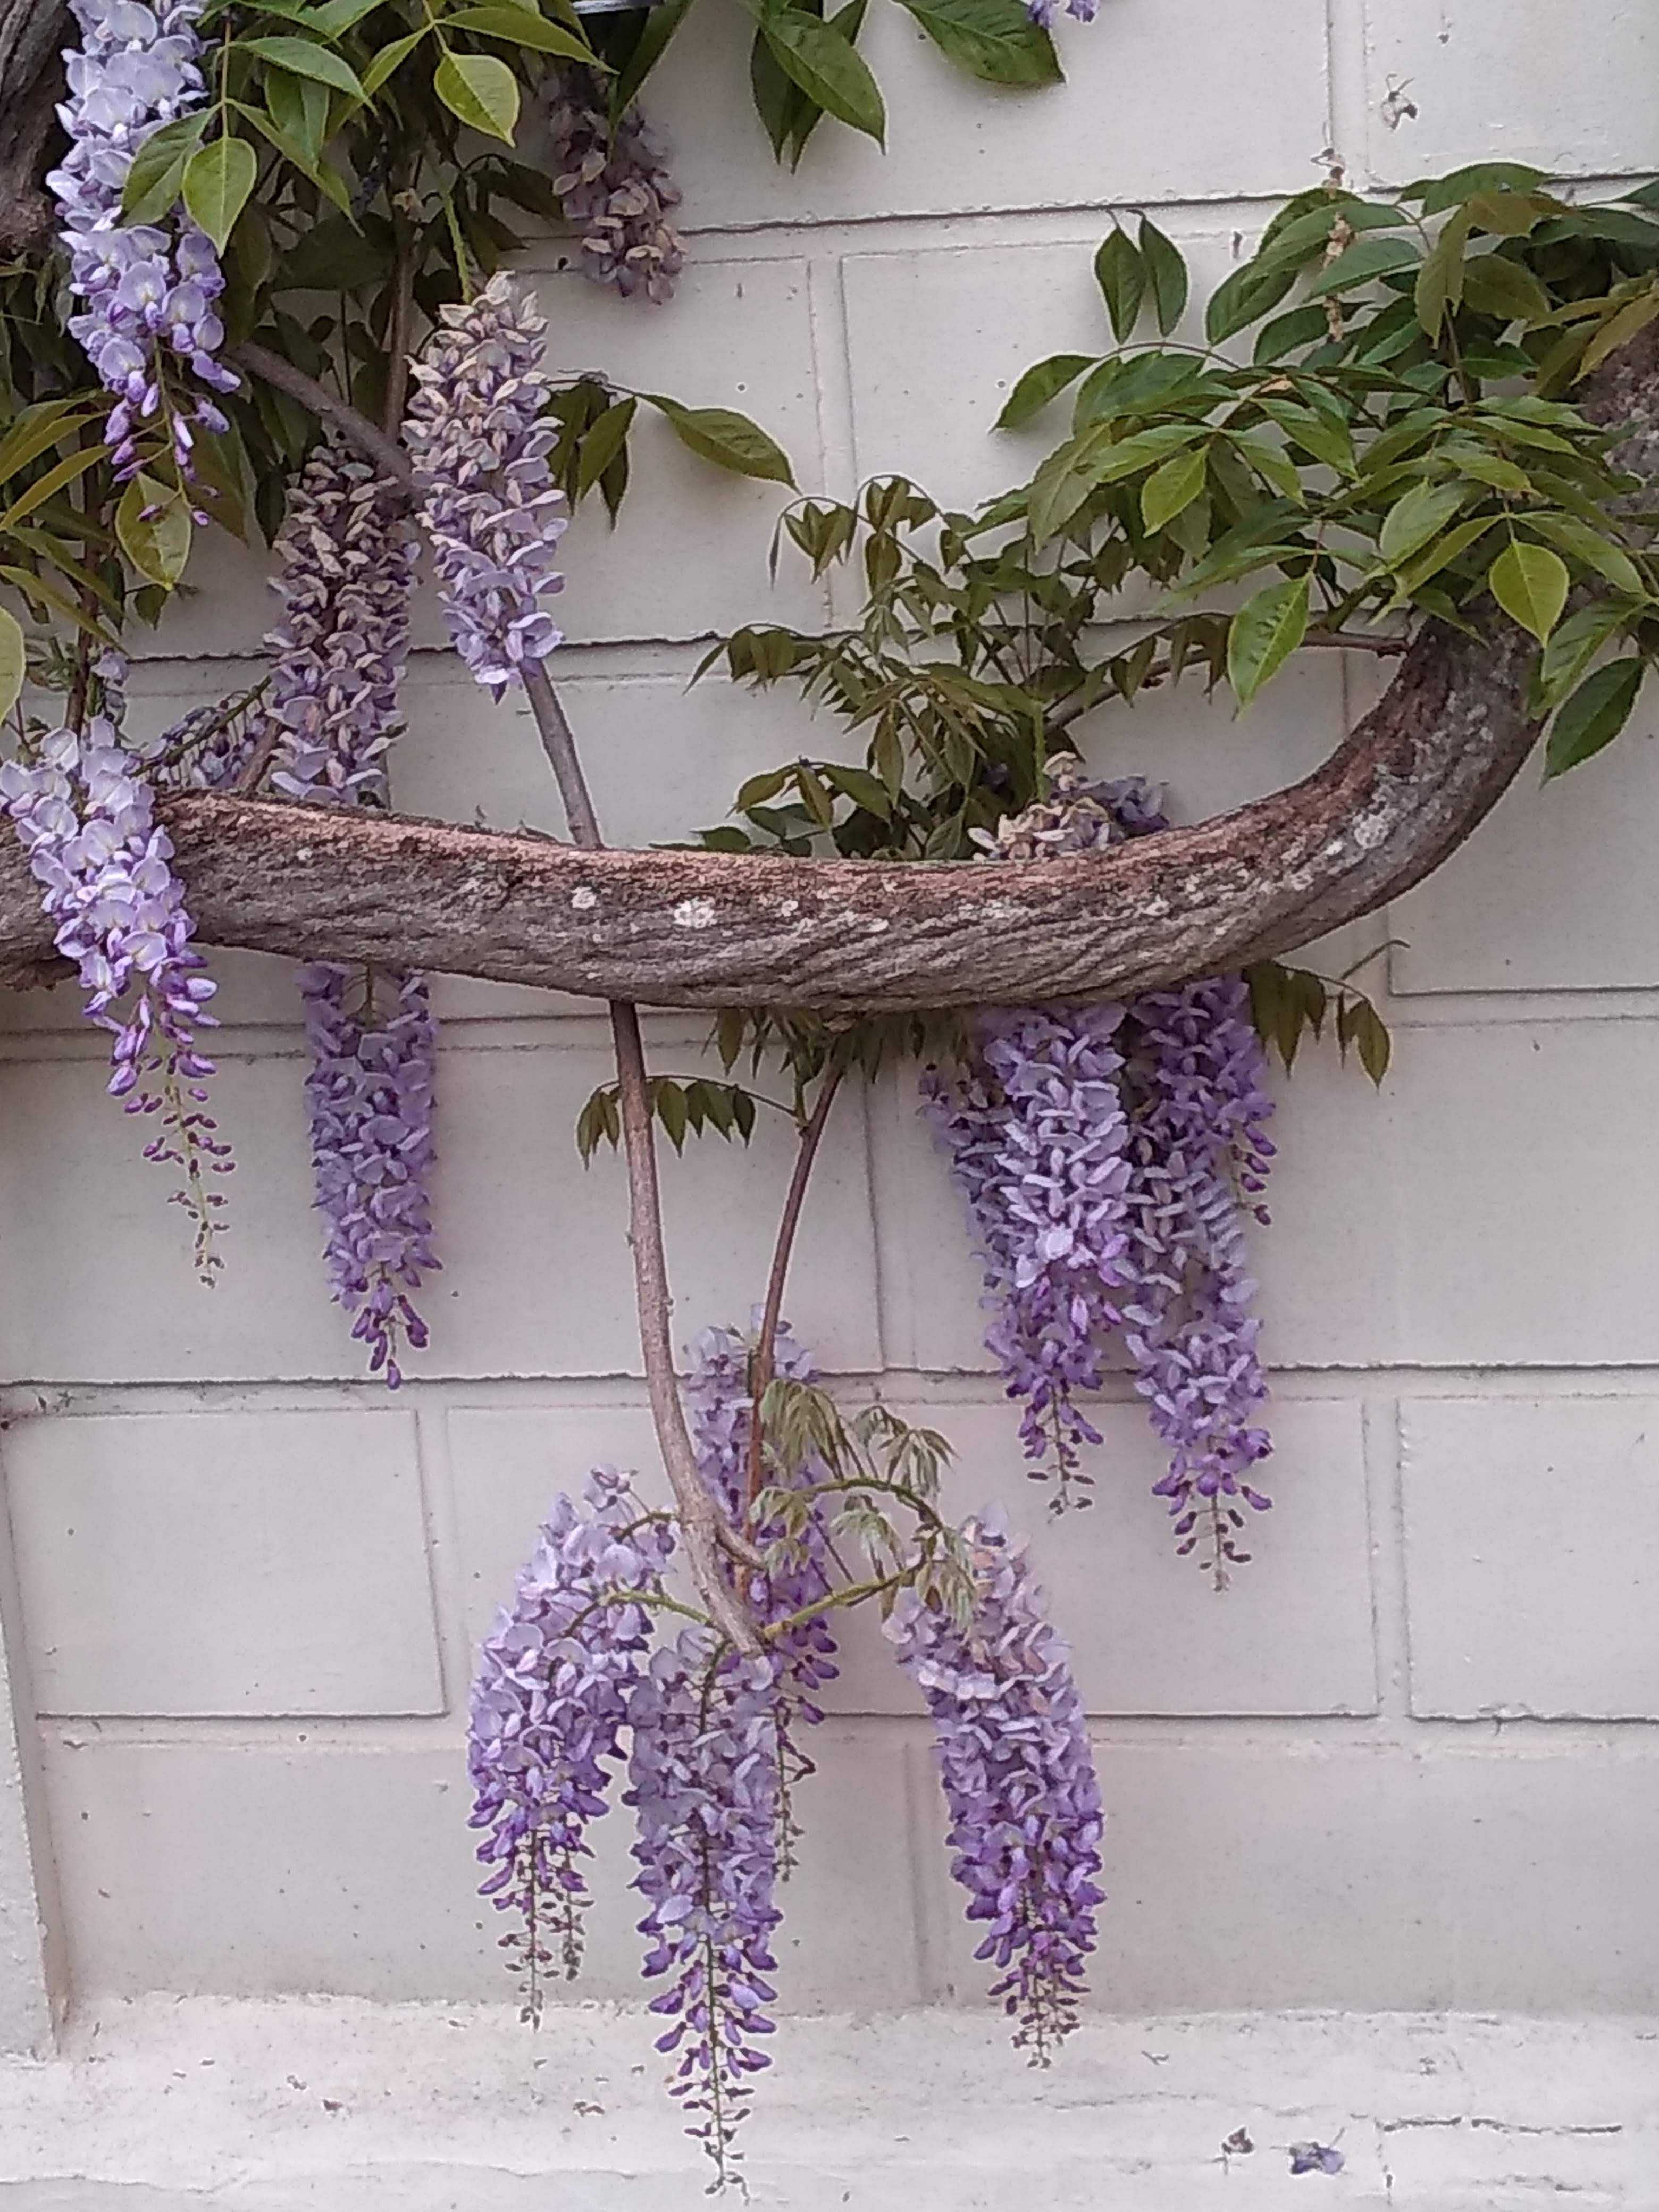 Flowering Wisteria covering part of wall